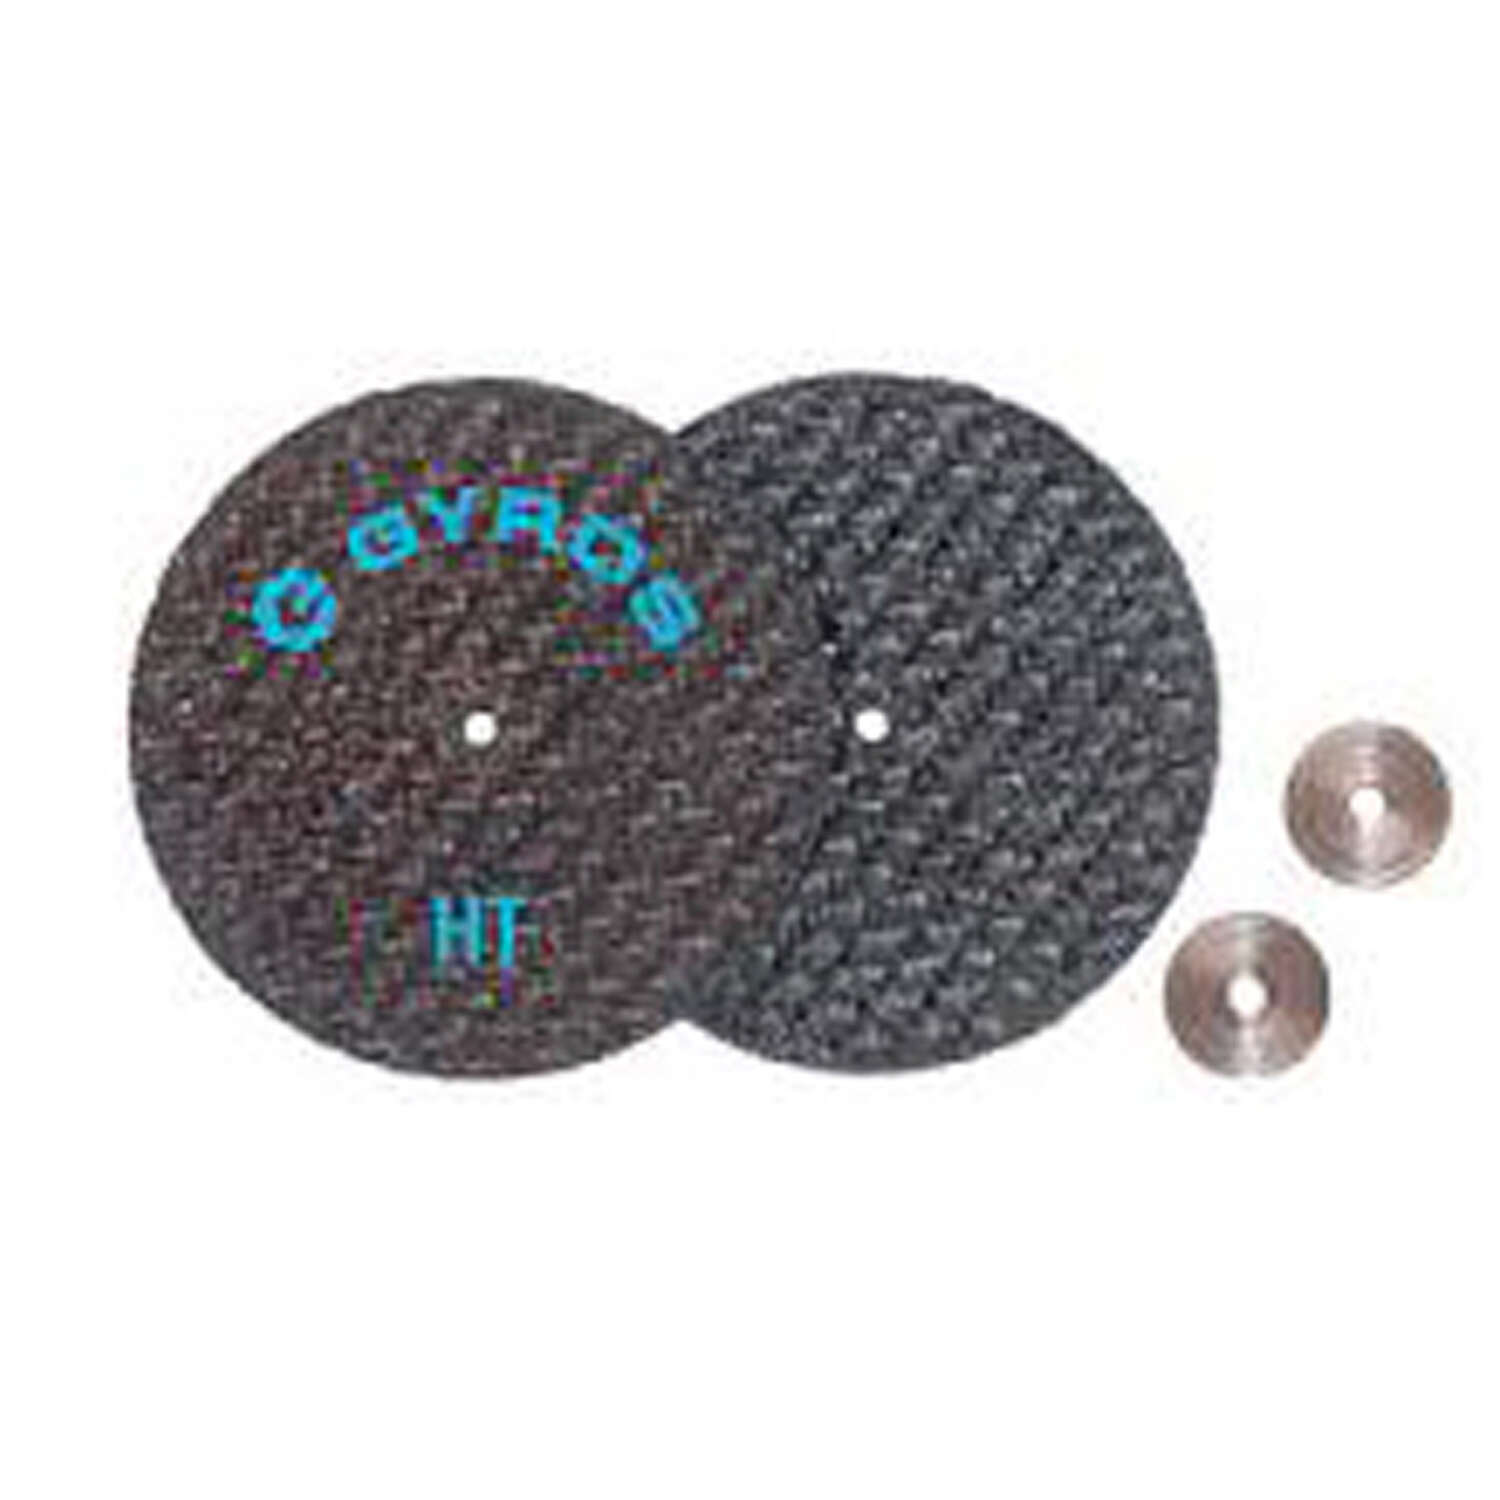 Gyros Tools  Fiber Disk Low Tensile  1-1/2 in. Fiberglass  Cutting Disc  1/32 in.  x 1/8 in.   2 pk